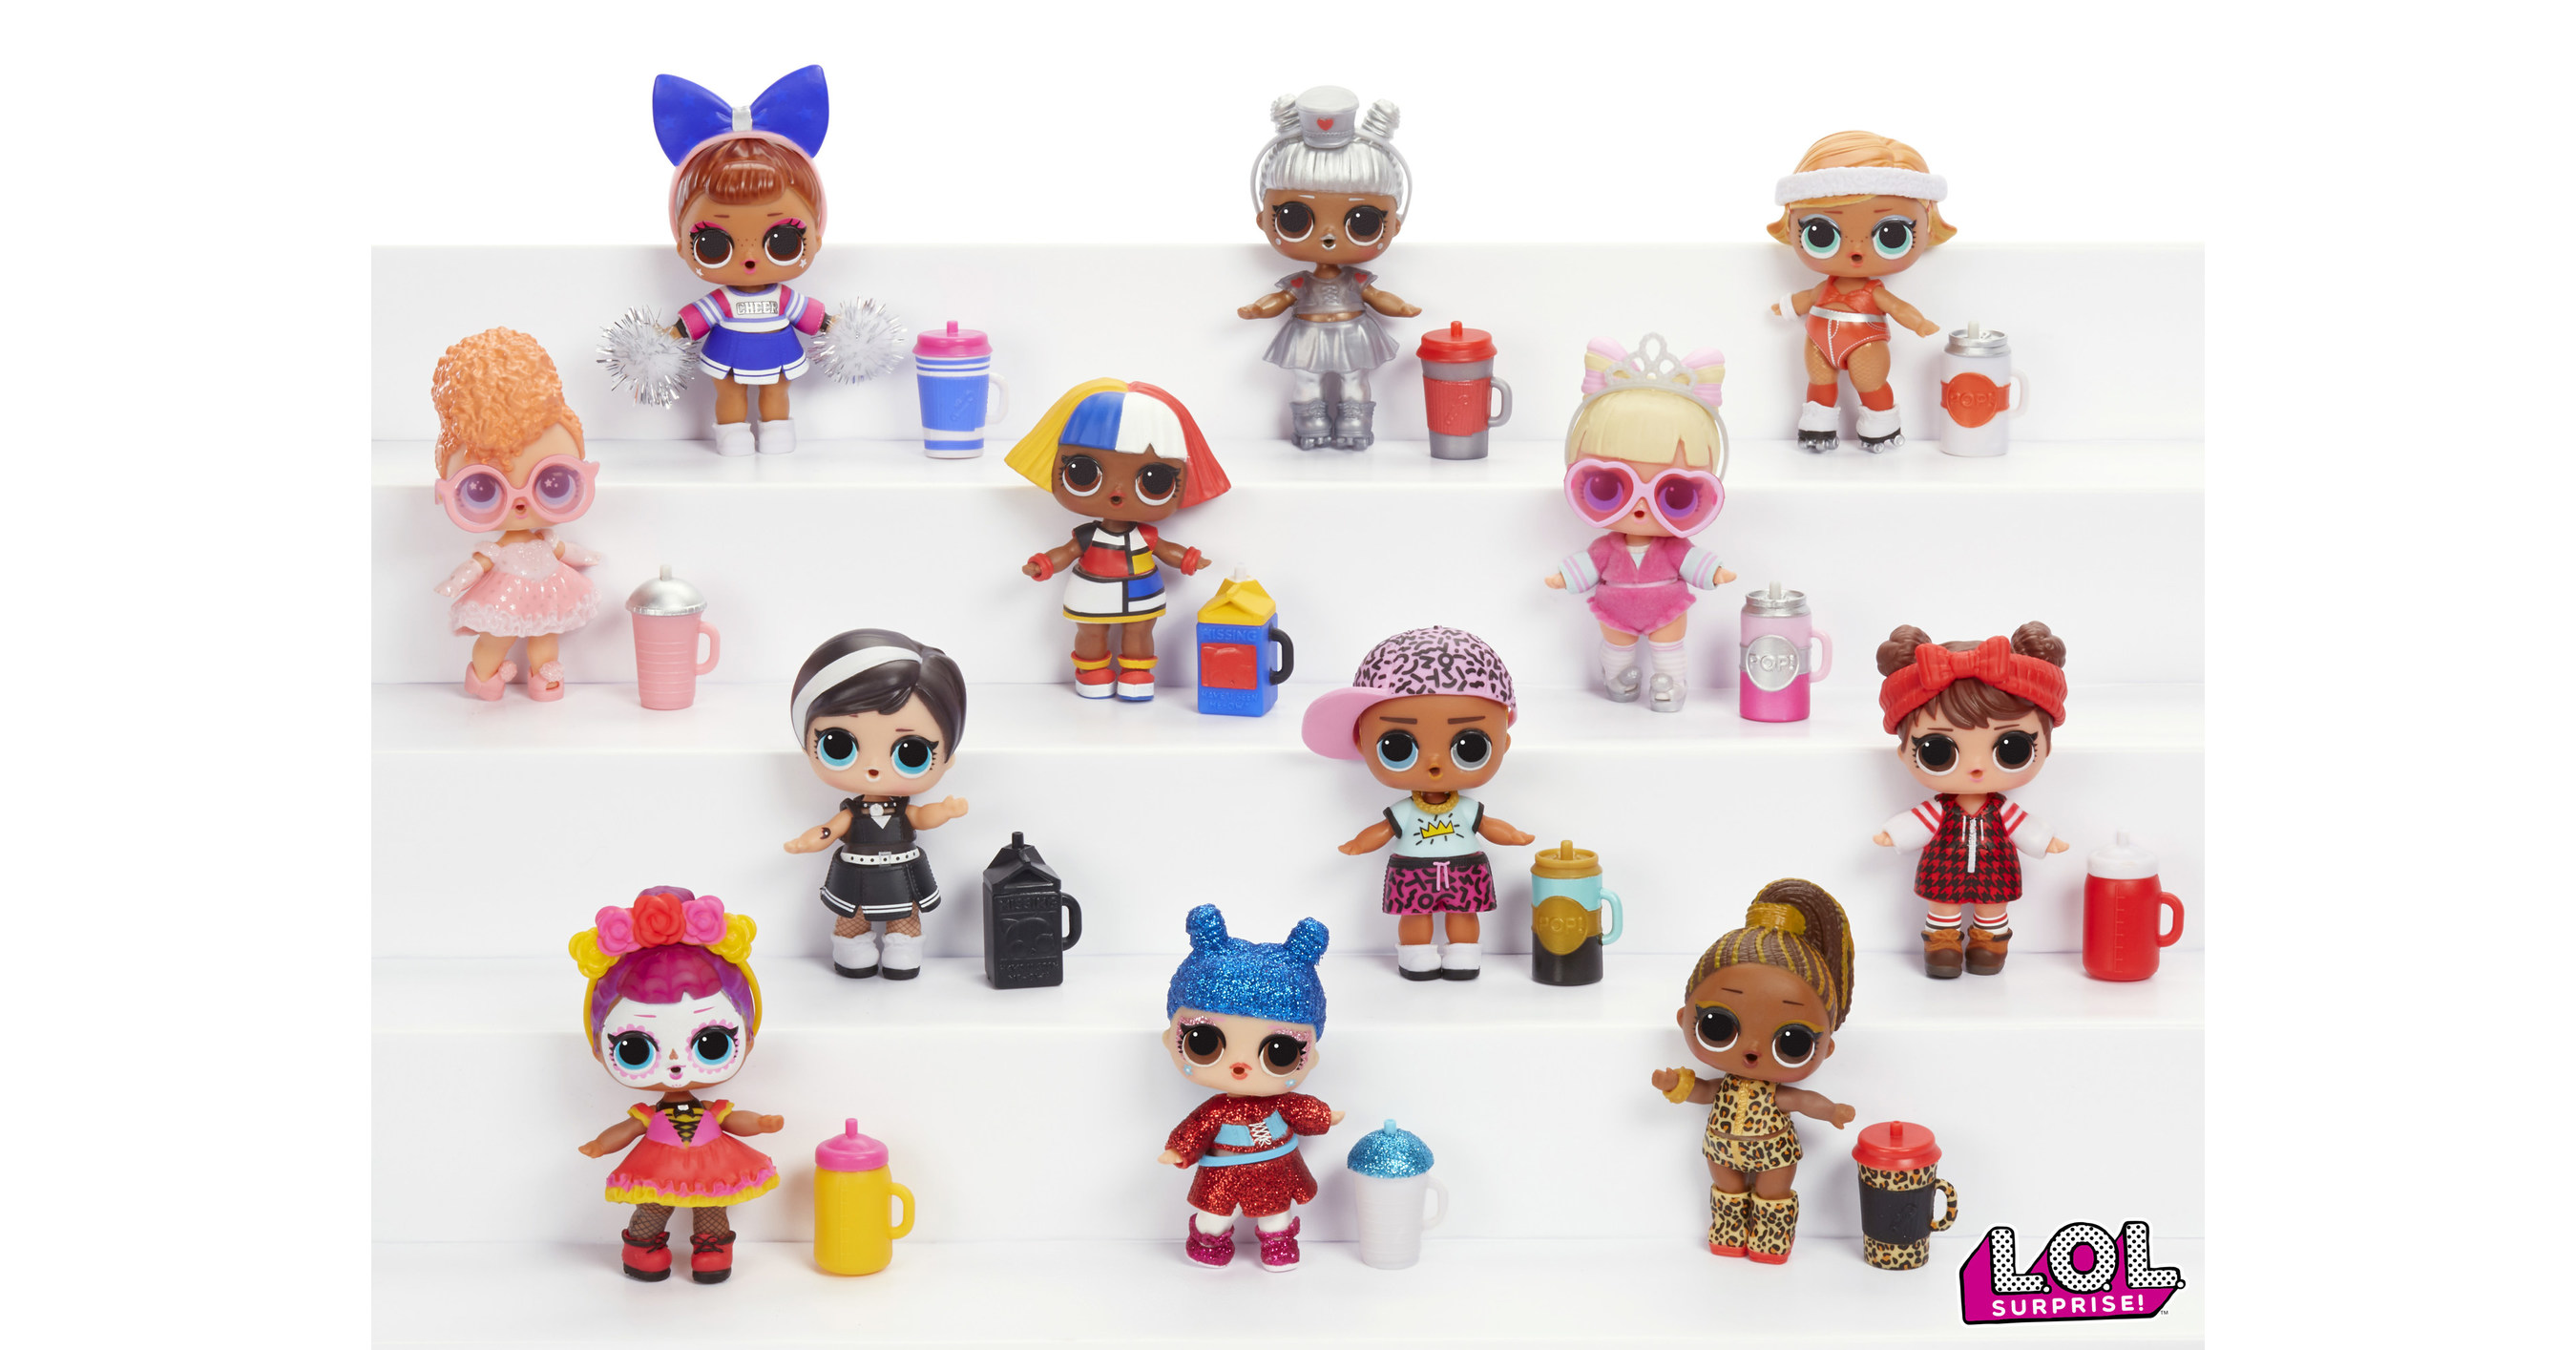 Fashionably Fabulous L.O.L. Surprise! Takes The Crown With Top Toy Awards